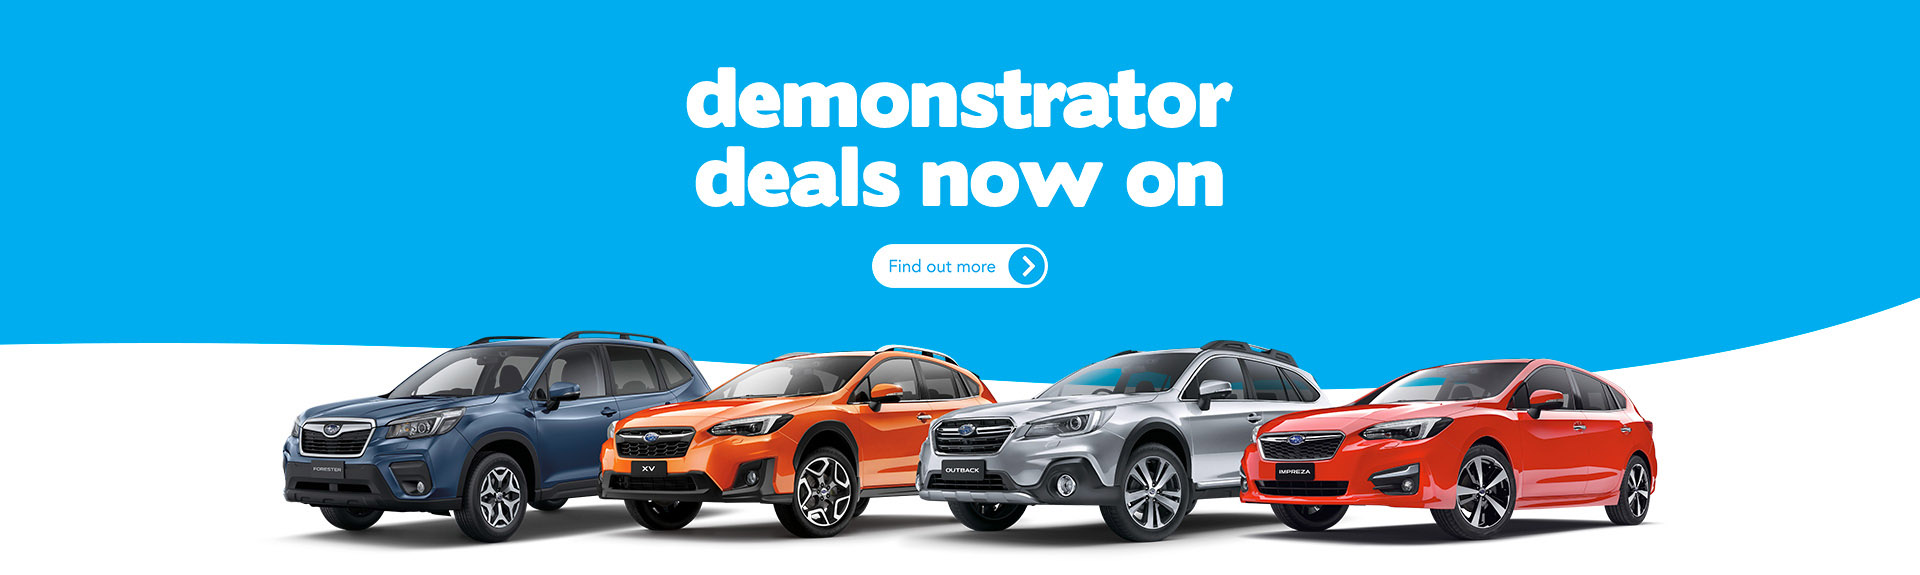 Subaru Demonstrator Deals Now On